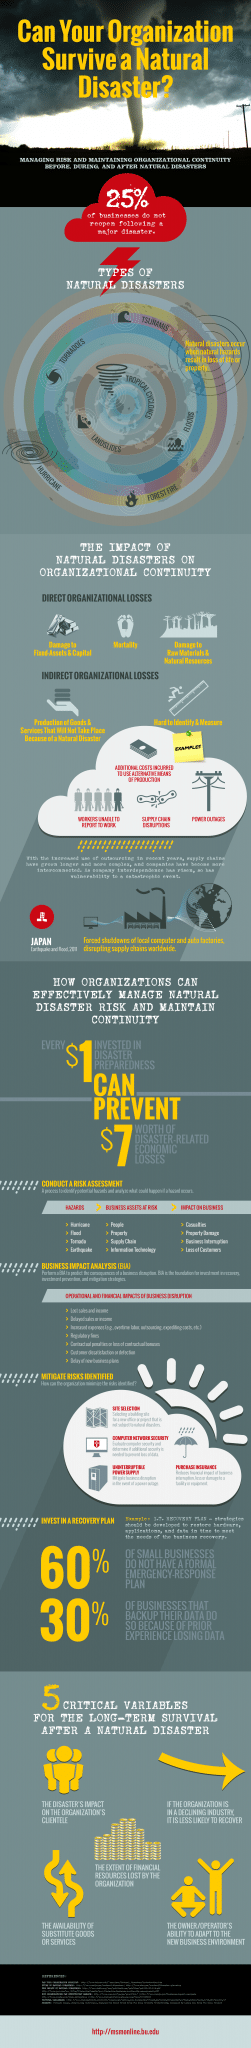 Photo of Can Your Organization Survive a Natural Disaster? [INFOGRAPHIC]